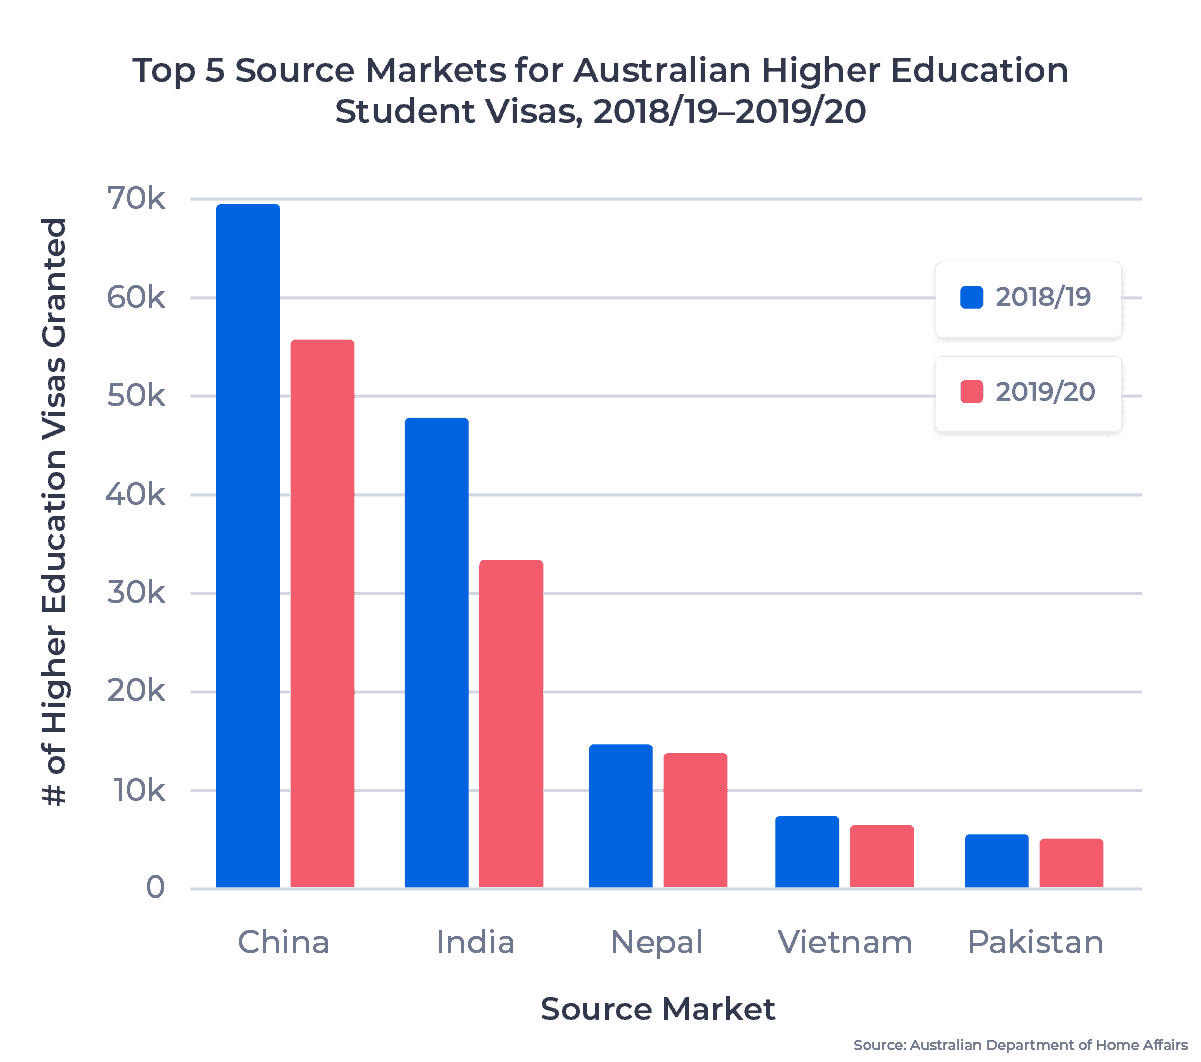 Double bar chart showing the top 5 source markets for Australian higher education student visas in 2018/19 to 2019/20